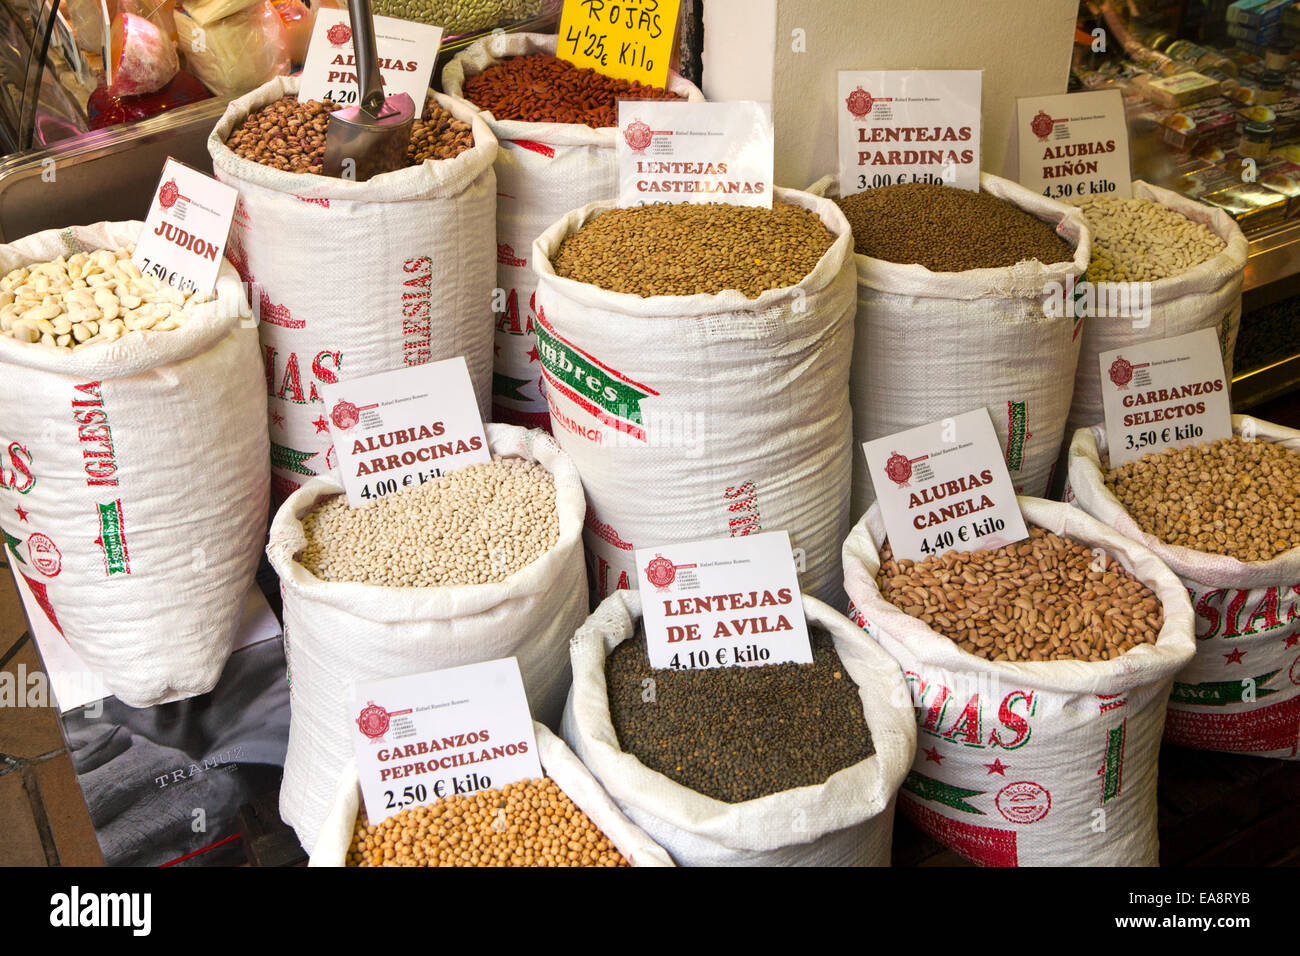 Sacks of beans and pulses on display in a market Bario Macarena, Seville, Spain - Stock Image